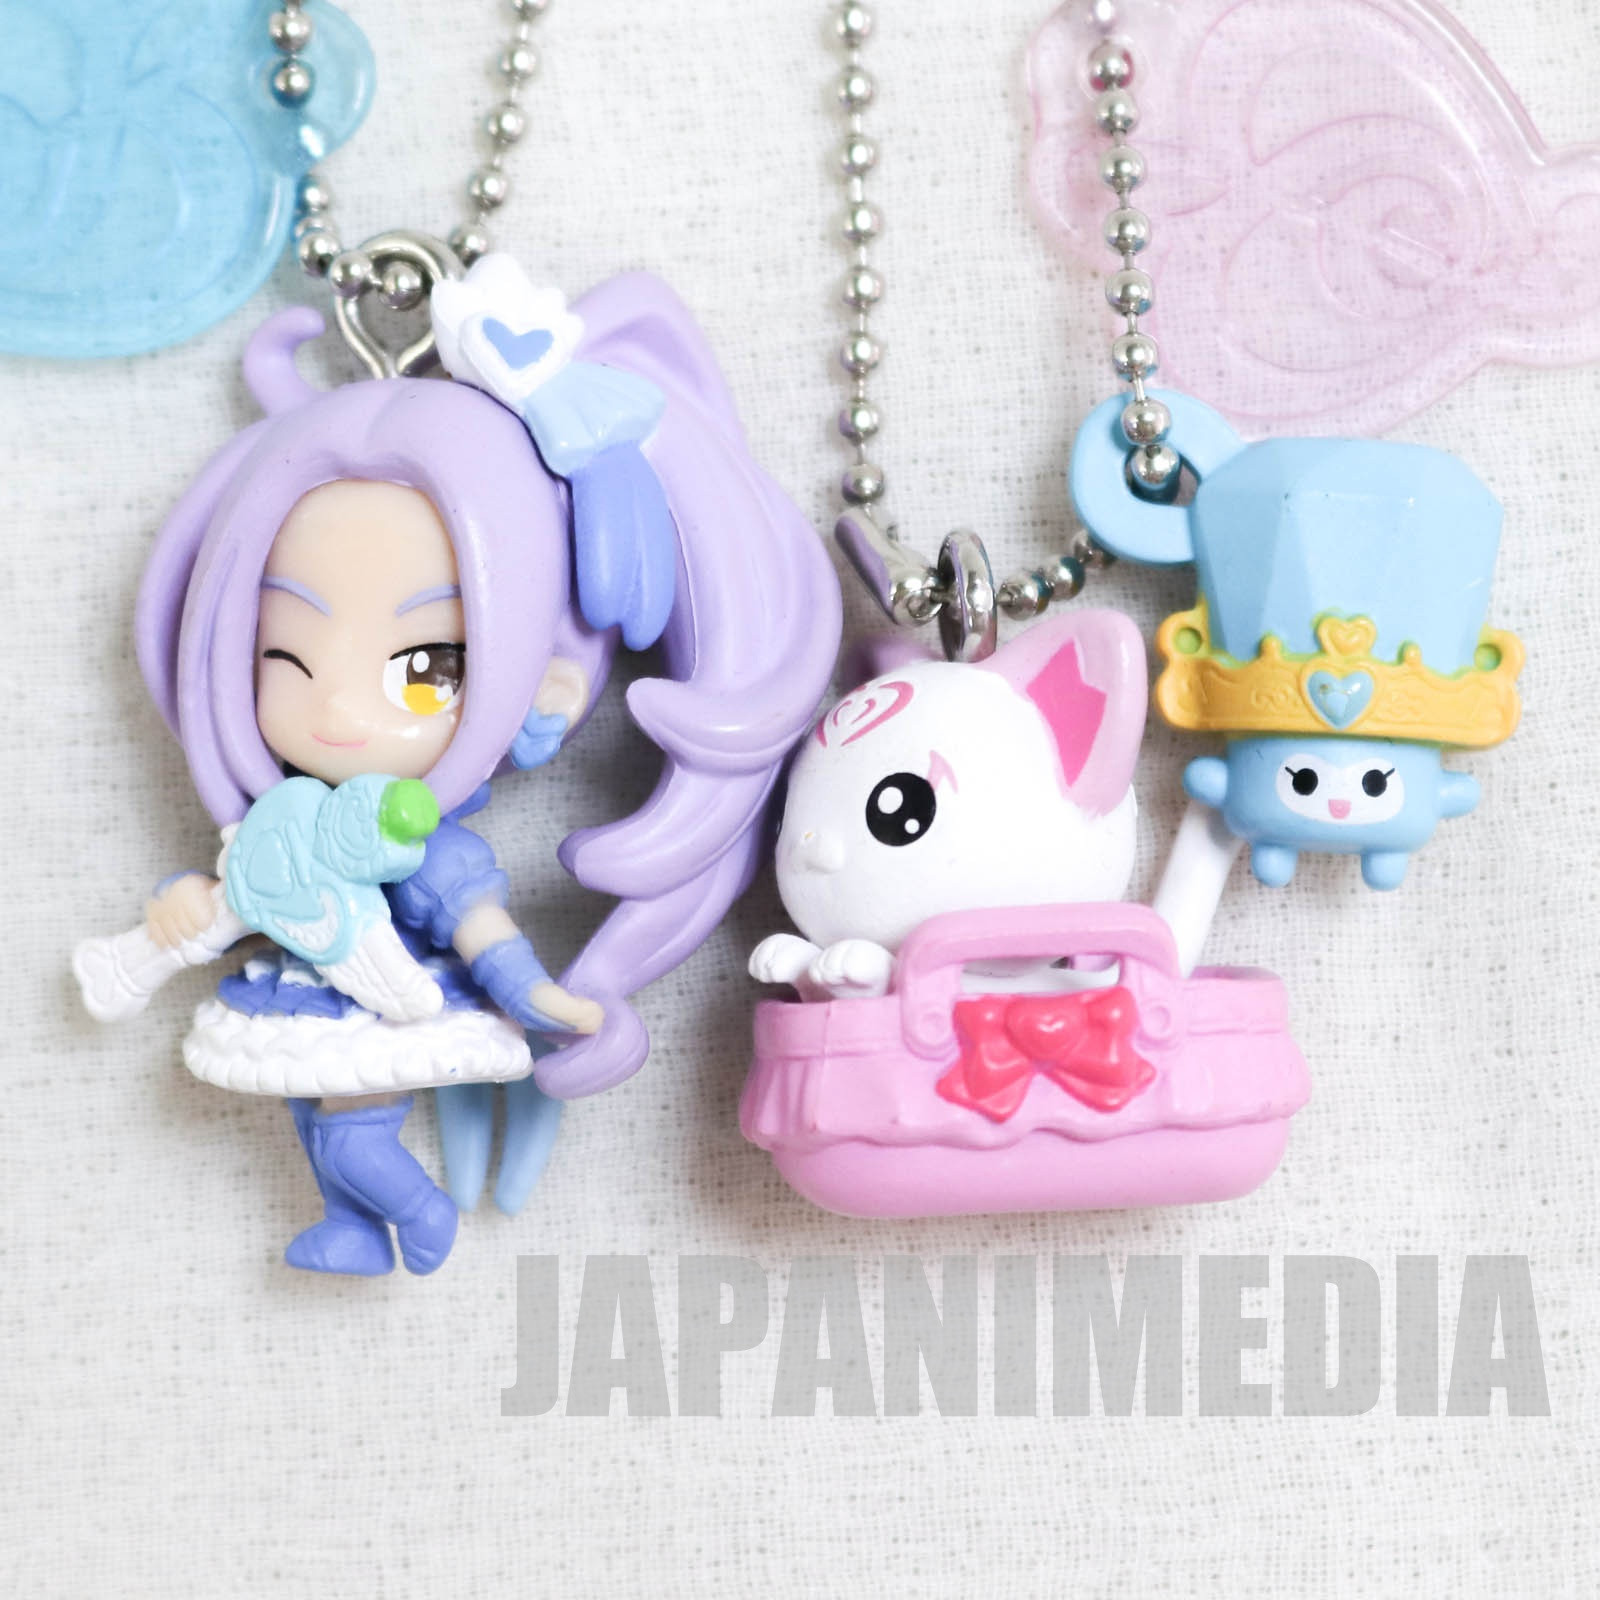 Suite PreCure Cure Beat / Hummy & Lary PreCure Goddess Swing Mascot Figure Ball Keychain 2pc set JAPAN ANIME